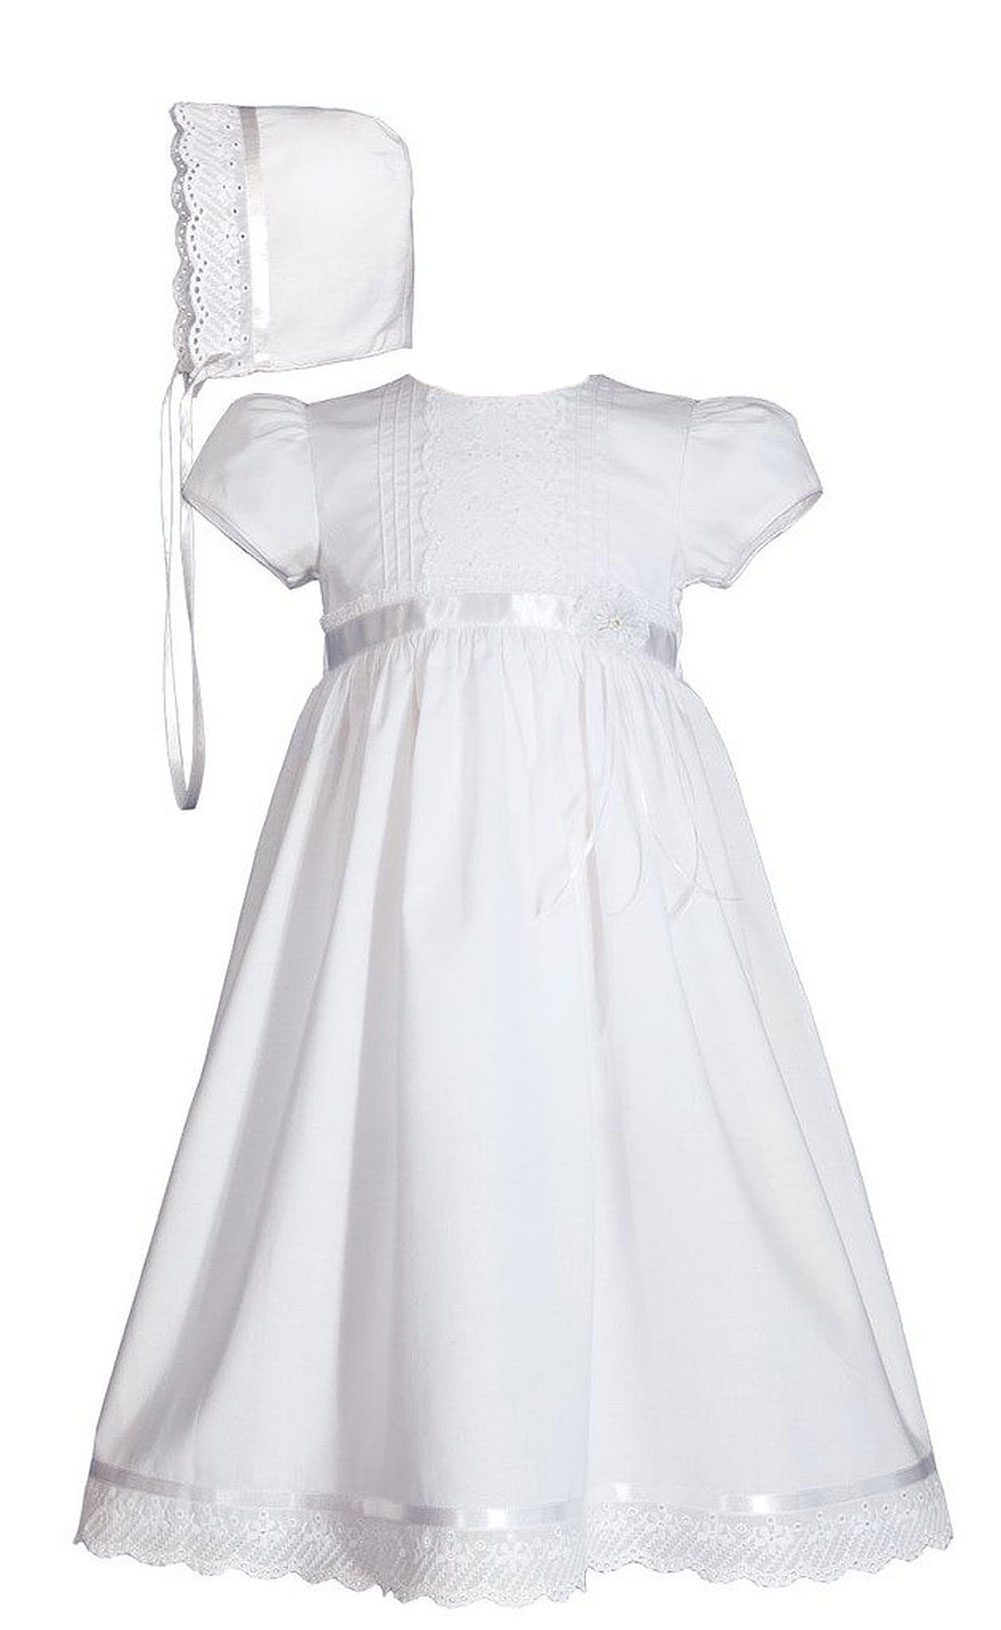 baptism-dresses-christening-gowns.jpg